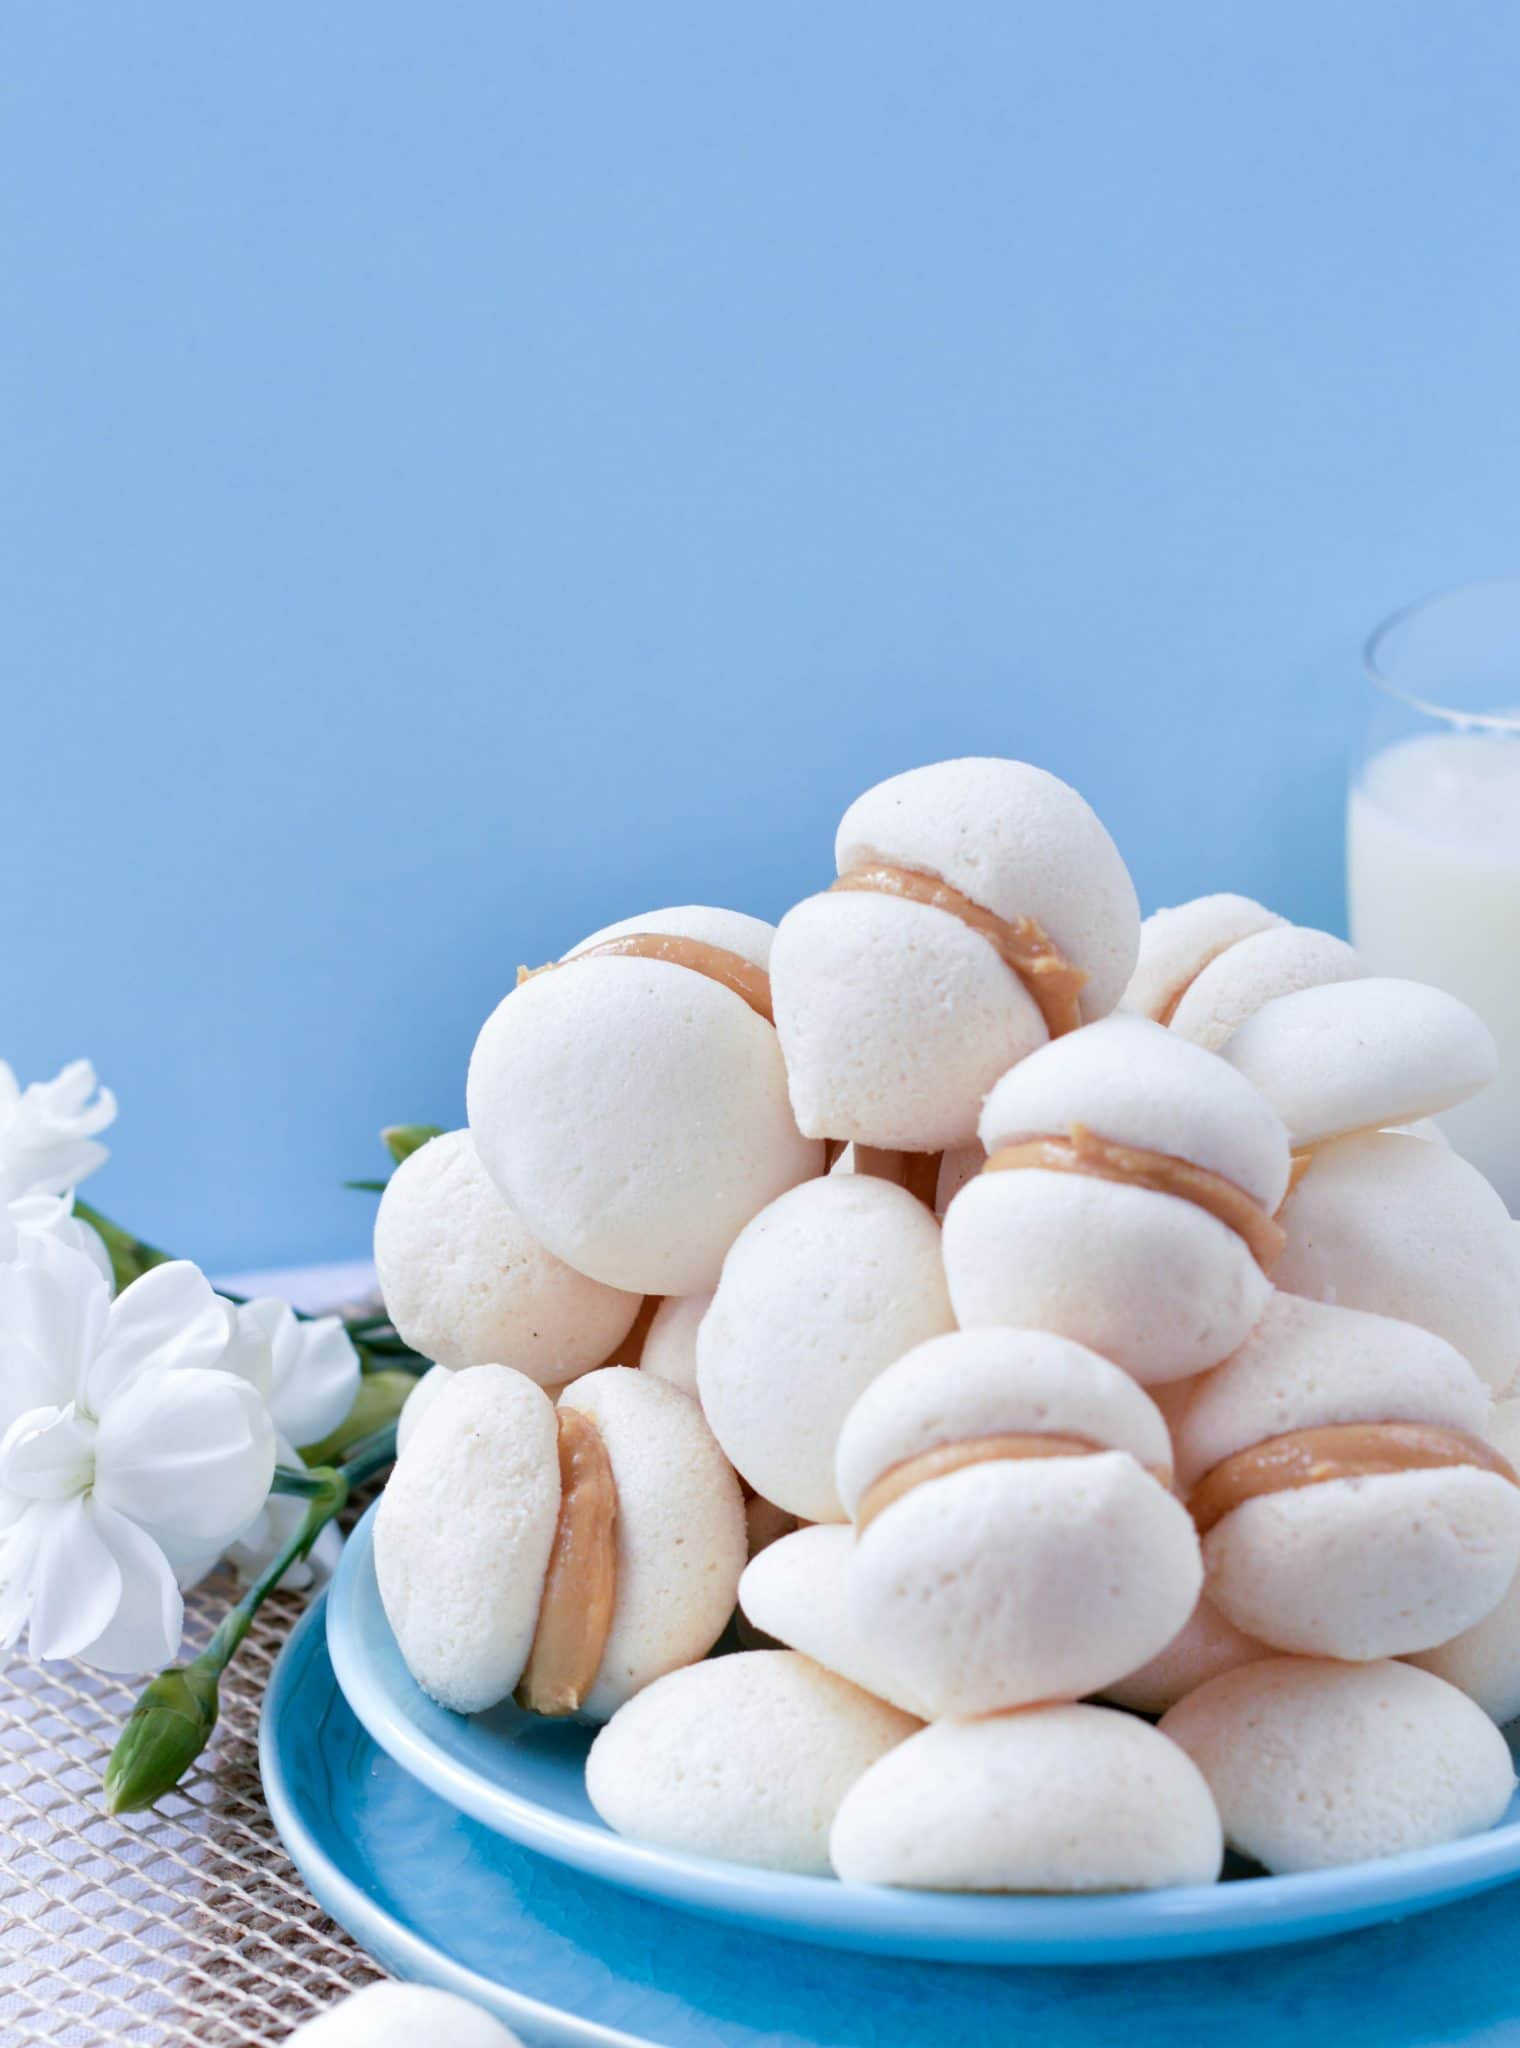 Aquafaba meringue cookies are delicious vegan meringue kisses made of chickpeas brine and stuffed with peanut butter. Sugar free option provided.